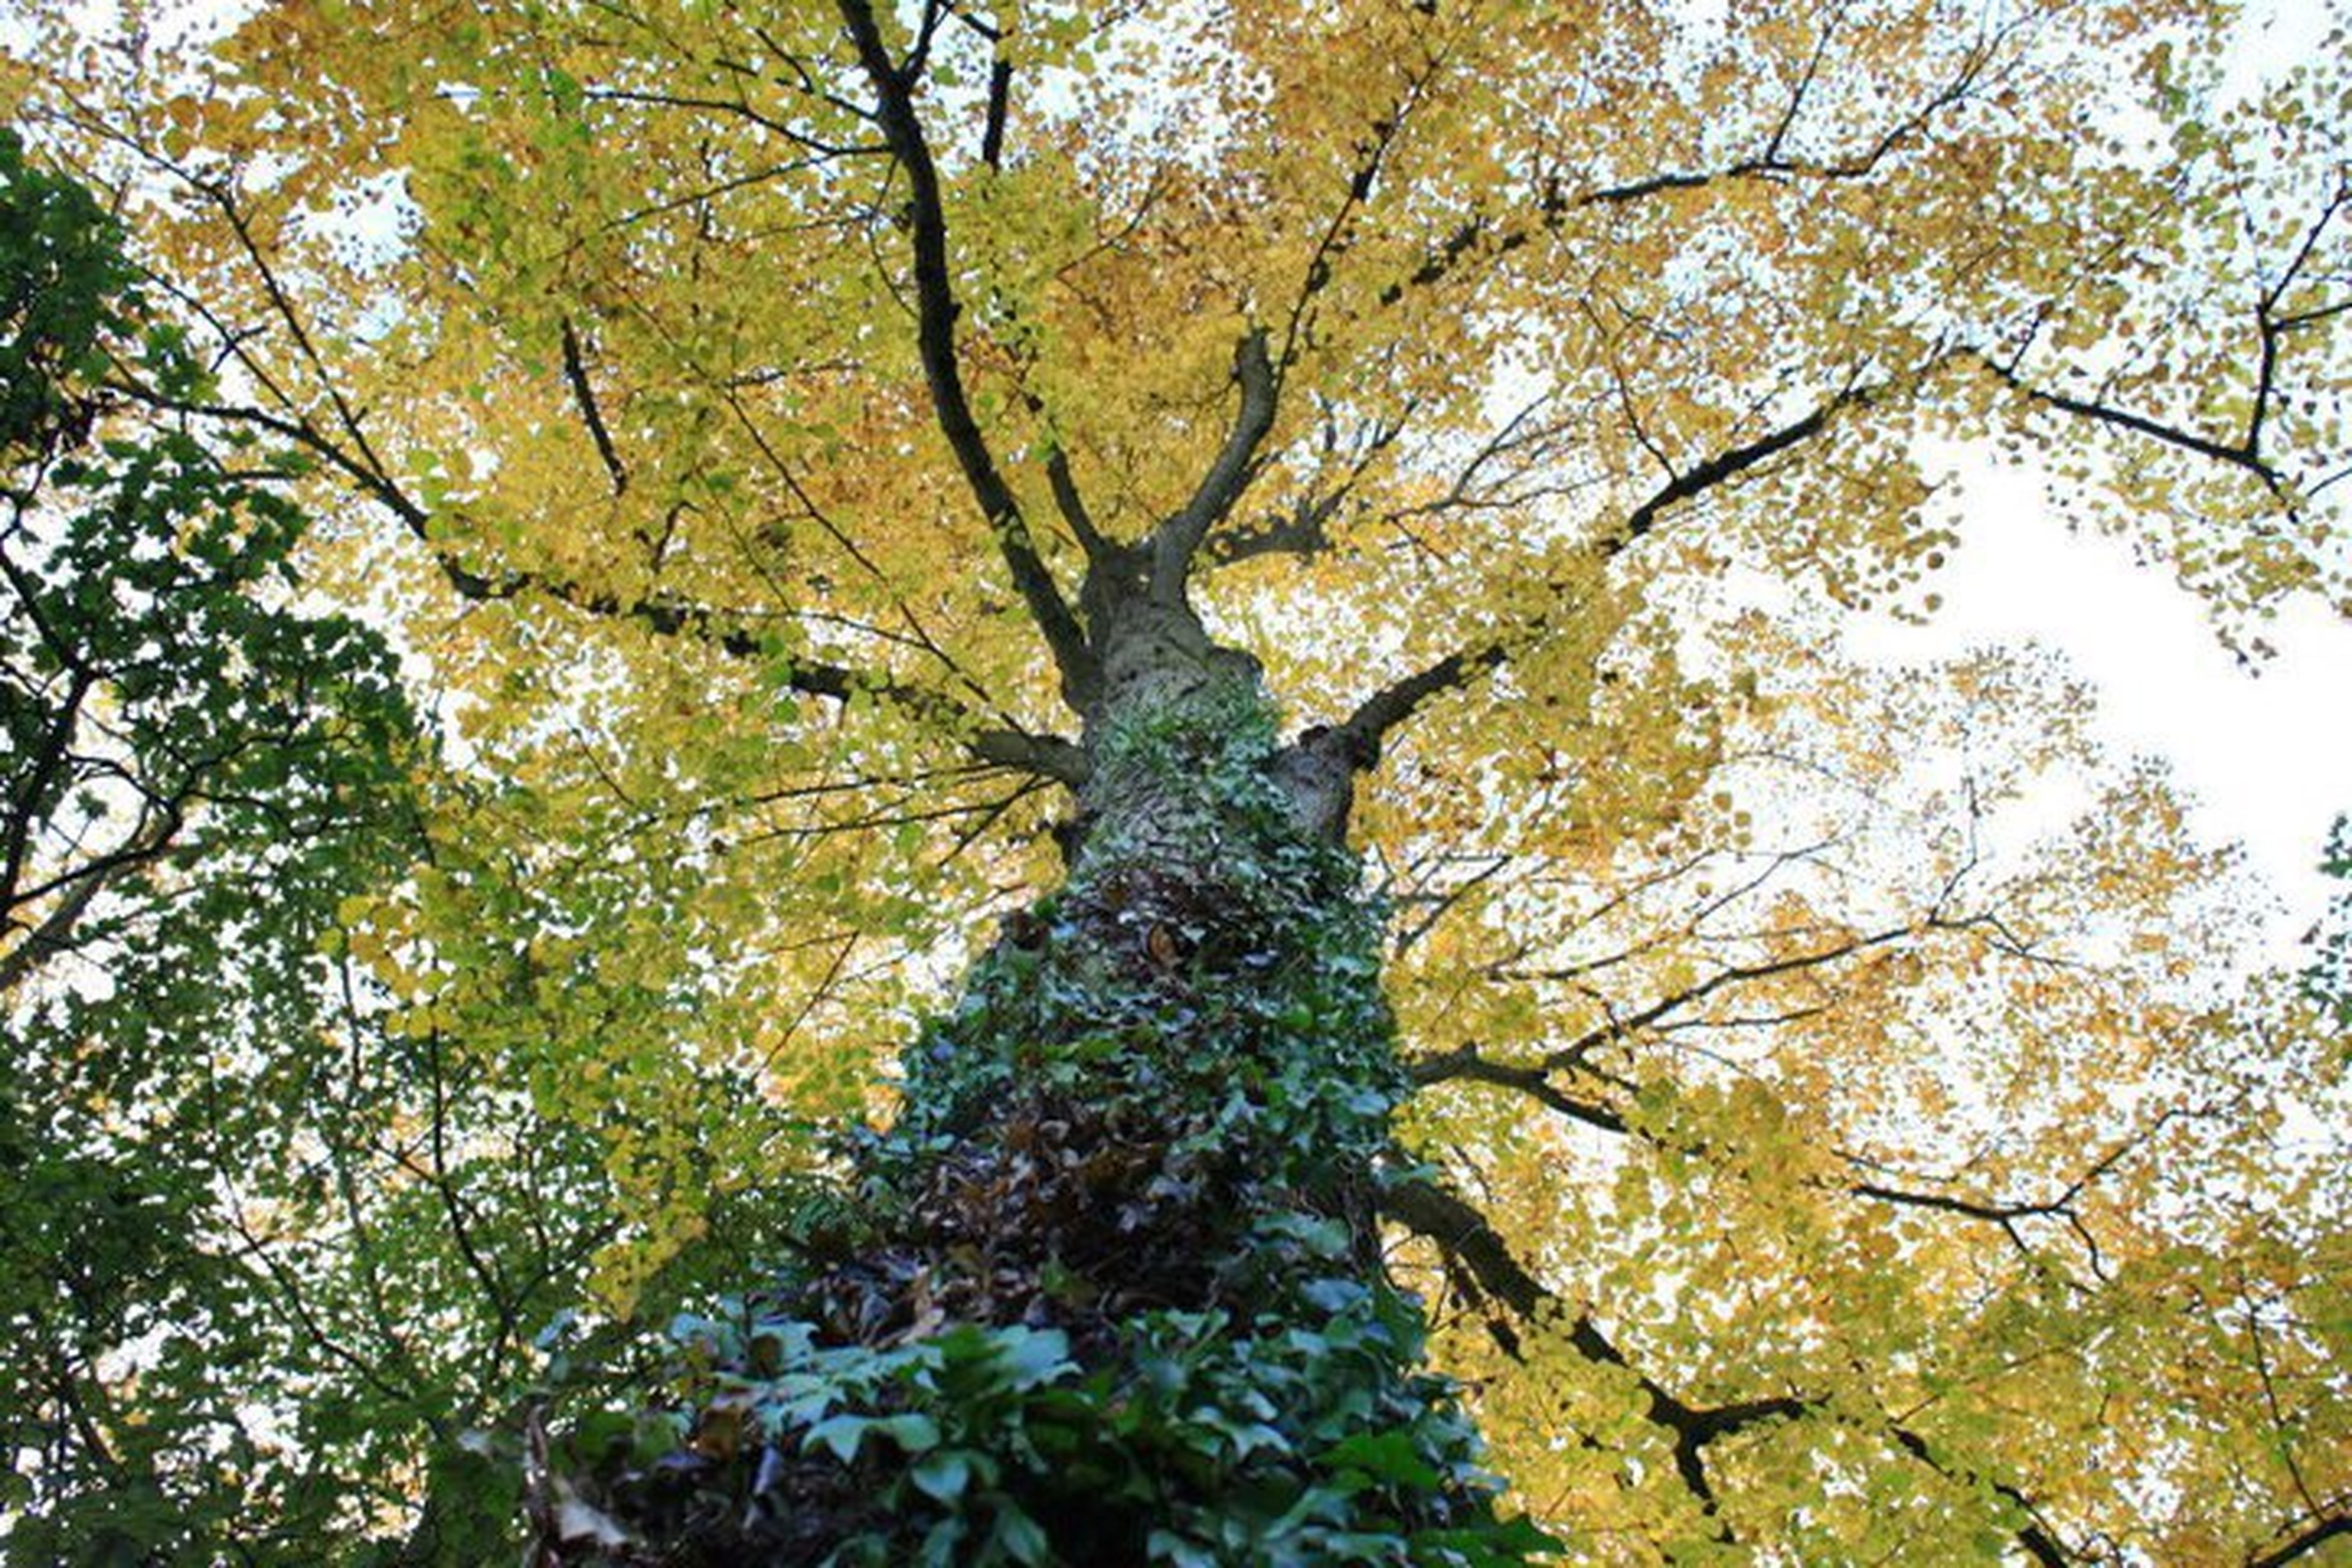 tree, low angle view, branch, growth, tree trunk, nature, scenics, green color, beauty in nature, day, single tree, tranquility, outdoors, sky, tranquil scene, freshness, green, no people, full frame, tree canopy, botany, vibrant color, tall